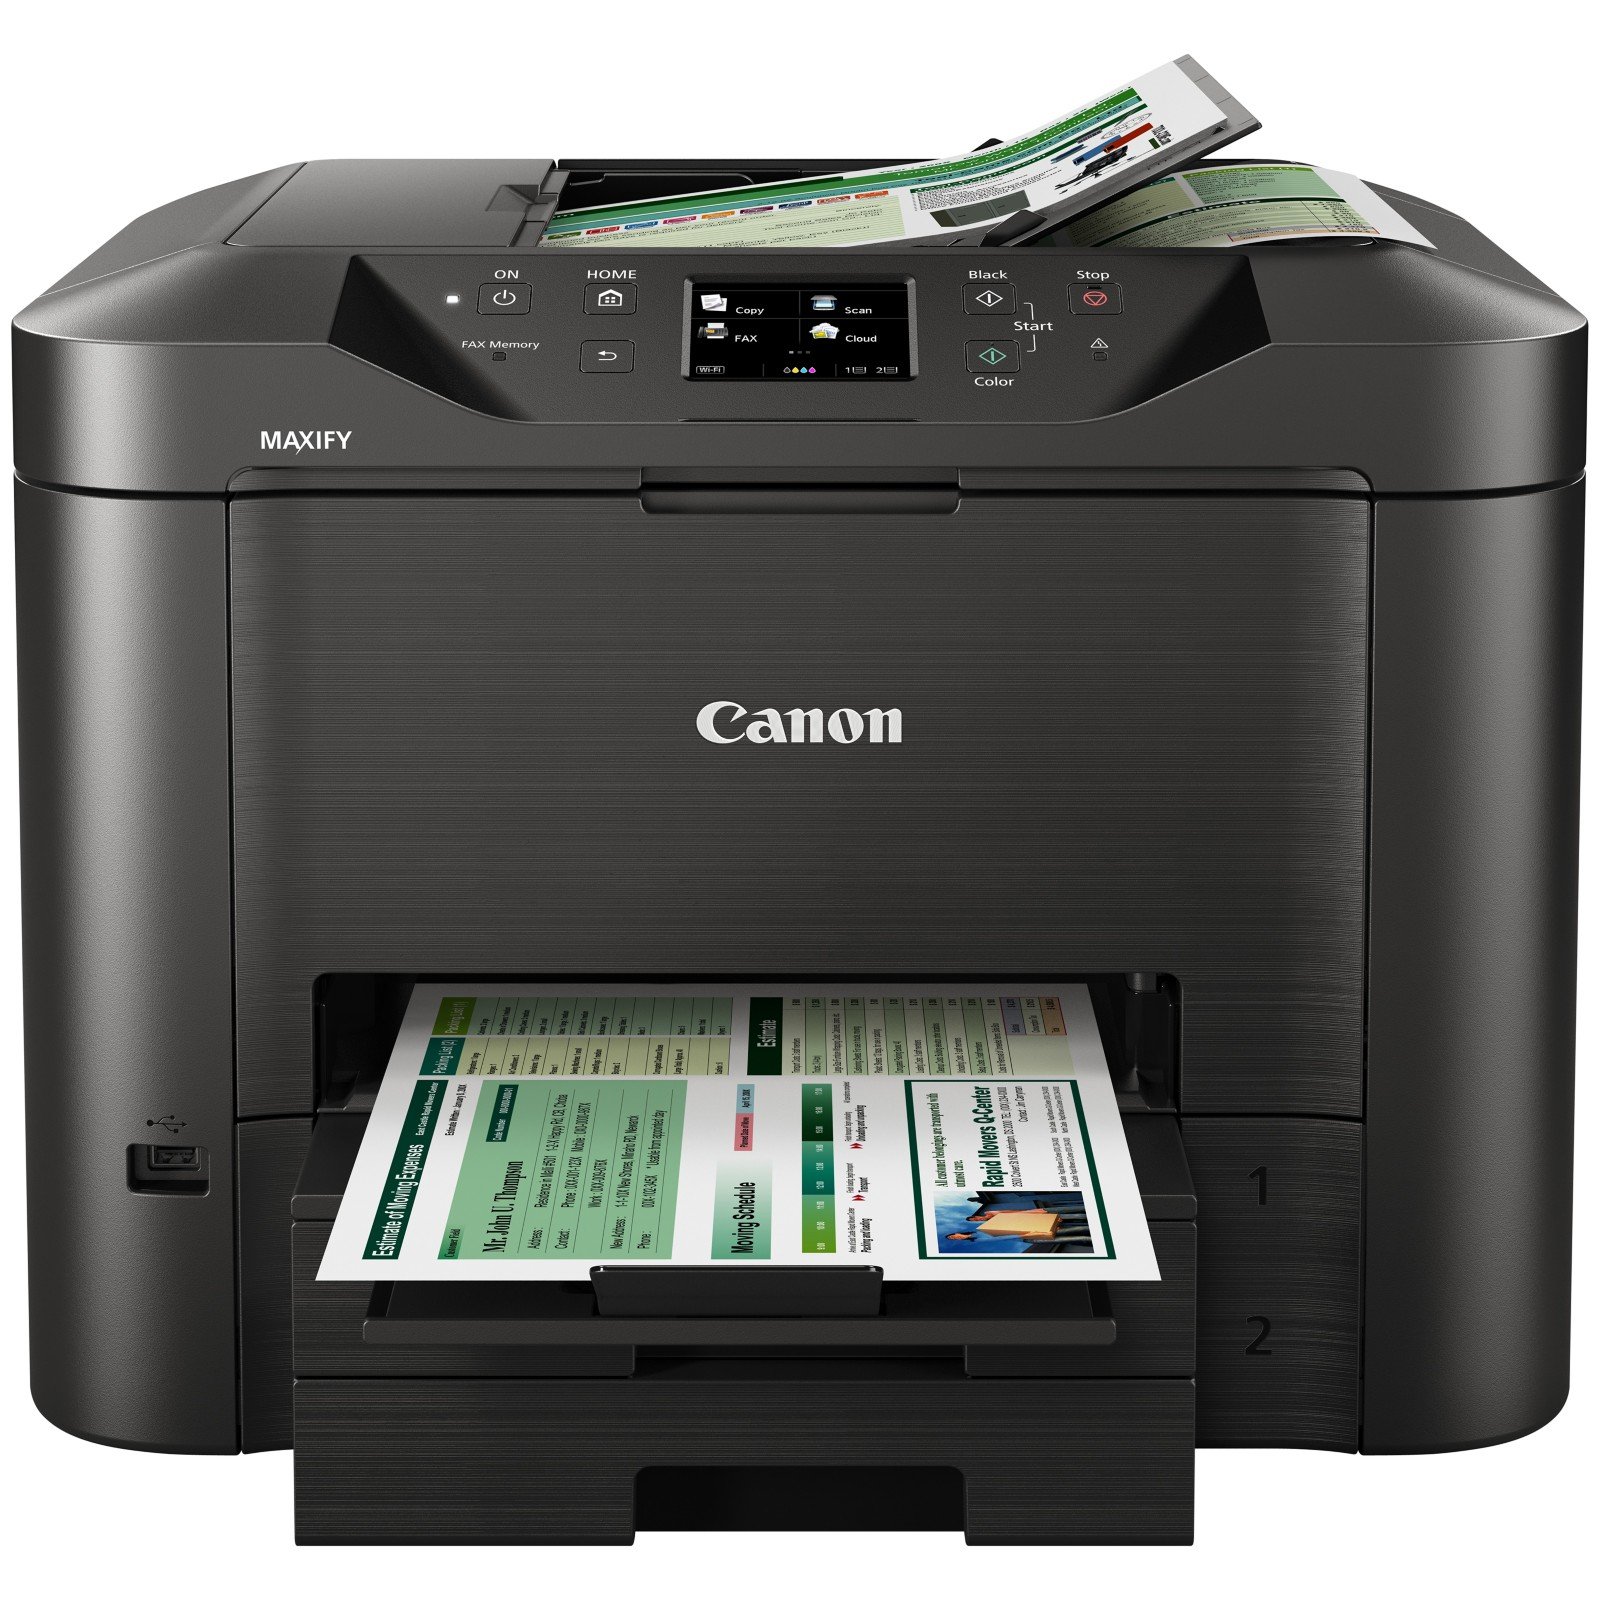 Canon MAXIFY MB5350 Wireless All-In-One Printer